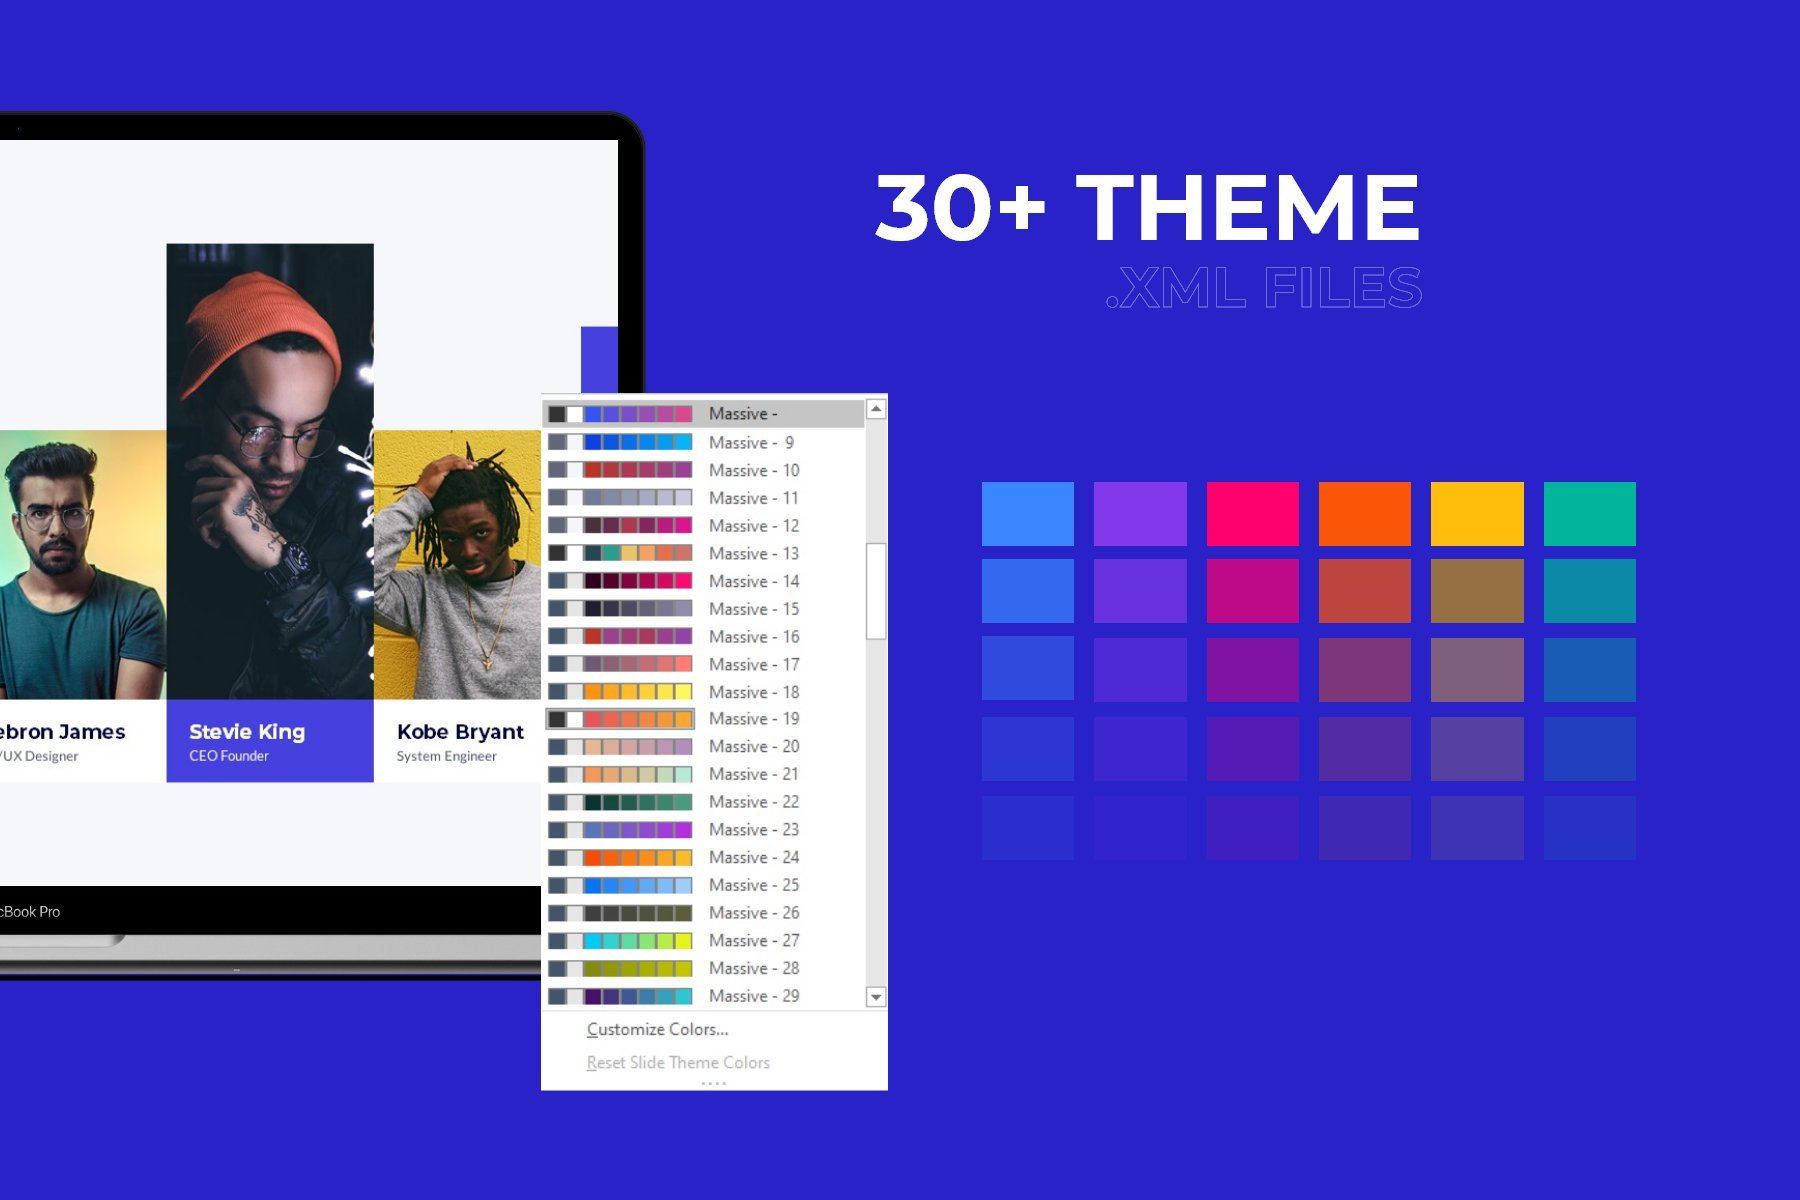 Different color variant of theme.